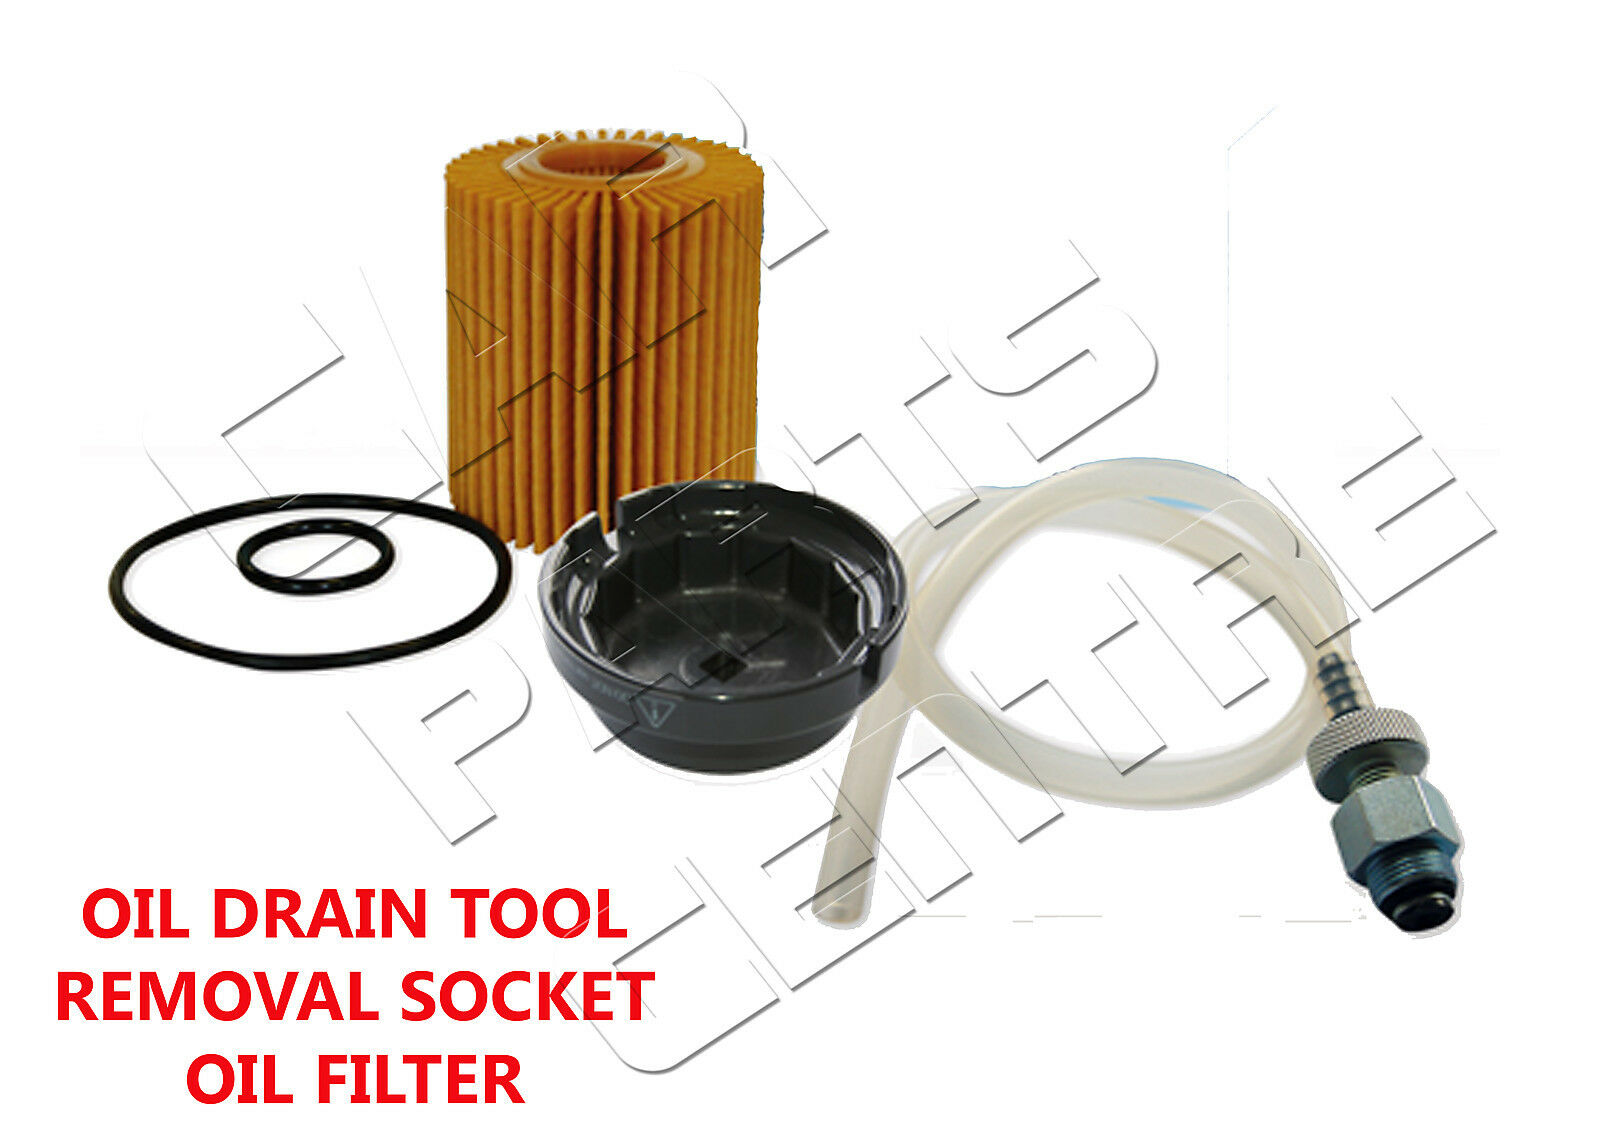 FOR TOYOTA RAV4 RAV-4 2.0 D4D OIL FILTER DRAIN DRAINING SOCKET ...